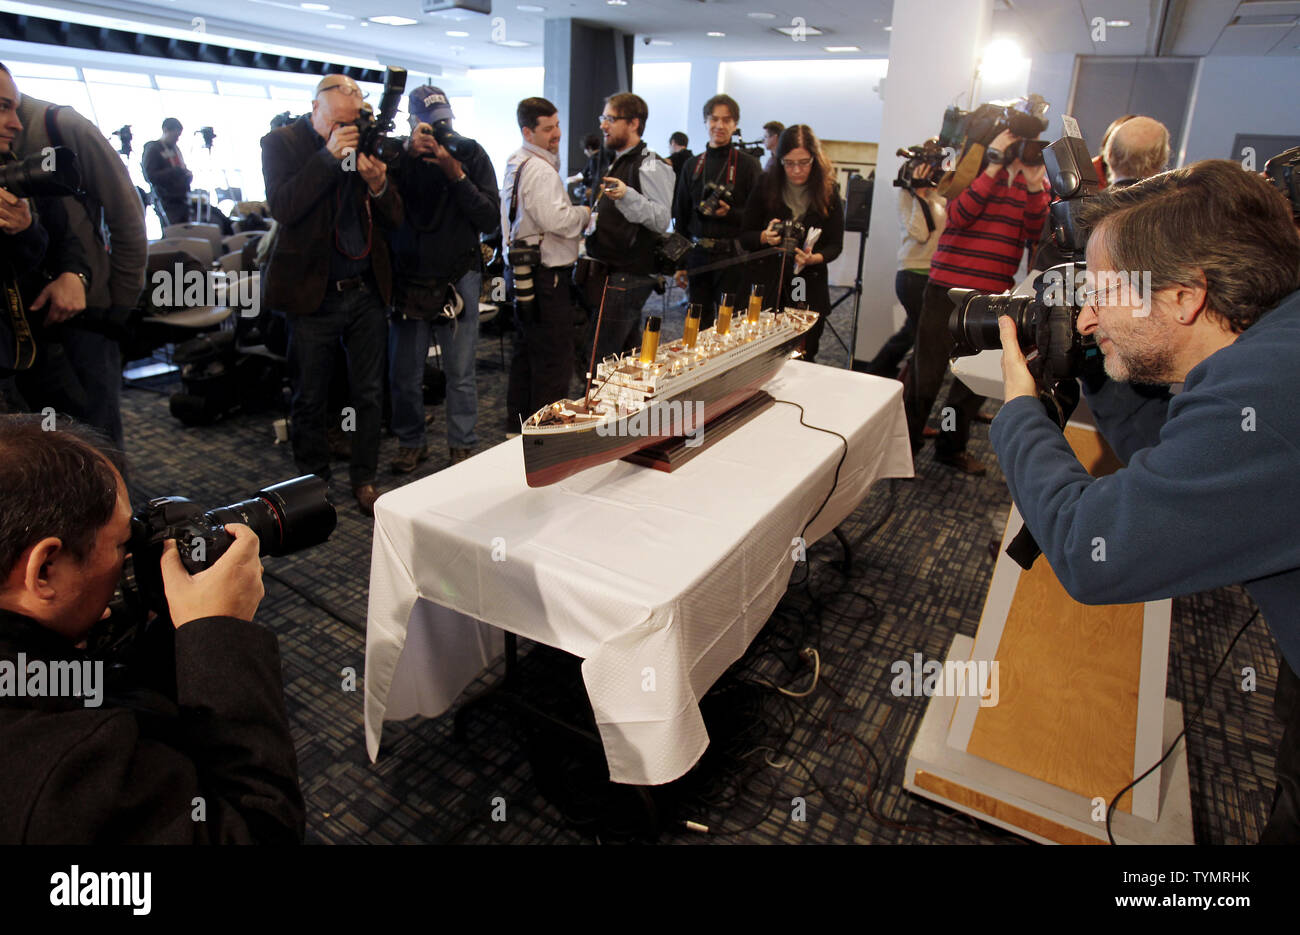 Media members gather around a model of the RMS Titanic as it sits on a table near where Artifacts recovered from the wreck site of the on display before being auctioned at the Intrepid Sea, Air & Space Museum in New York City on January 5, 2012. The auction will take place on April 11, 2012 on the 100 year anniversary of the ships maiden voyage and will be sold as one single collection.    UPI/John Angelillo - Stock Image